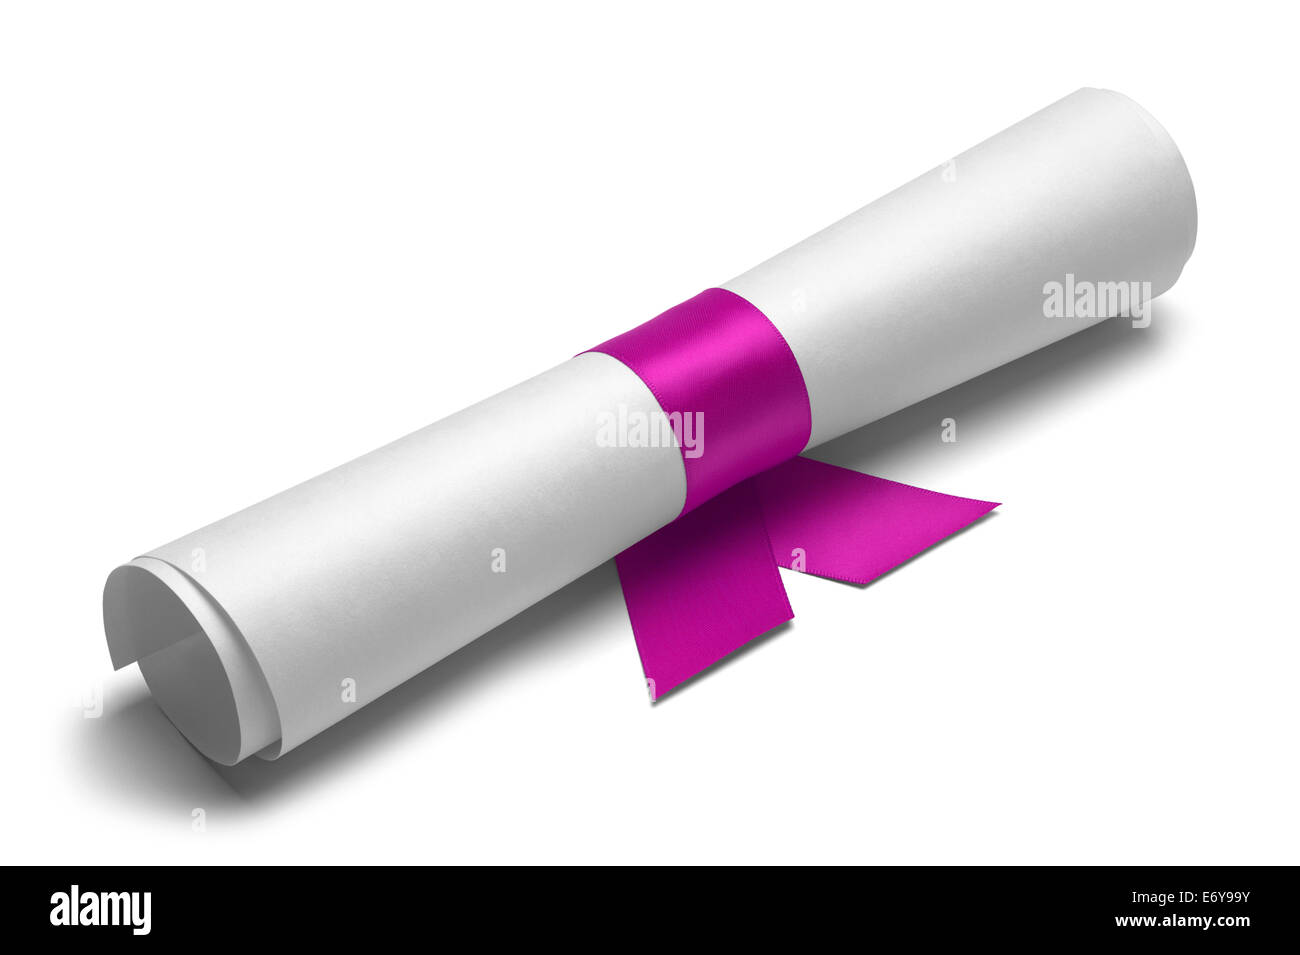 Diploma tied with pink ribbon on a white isolated background. - Stock Image